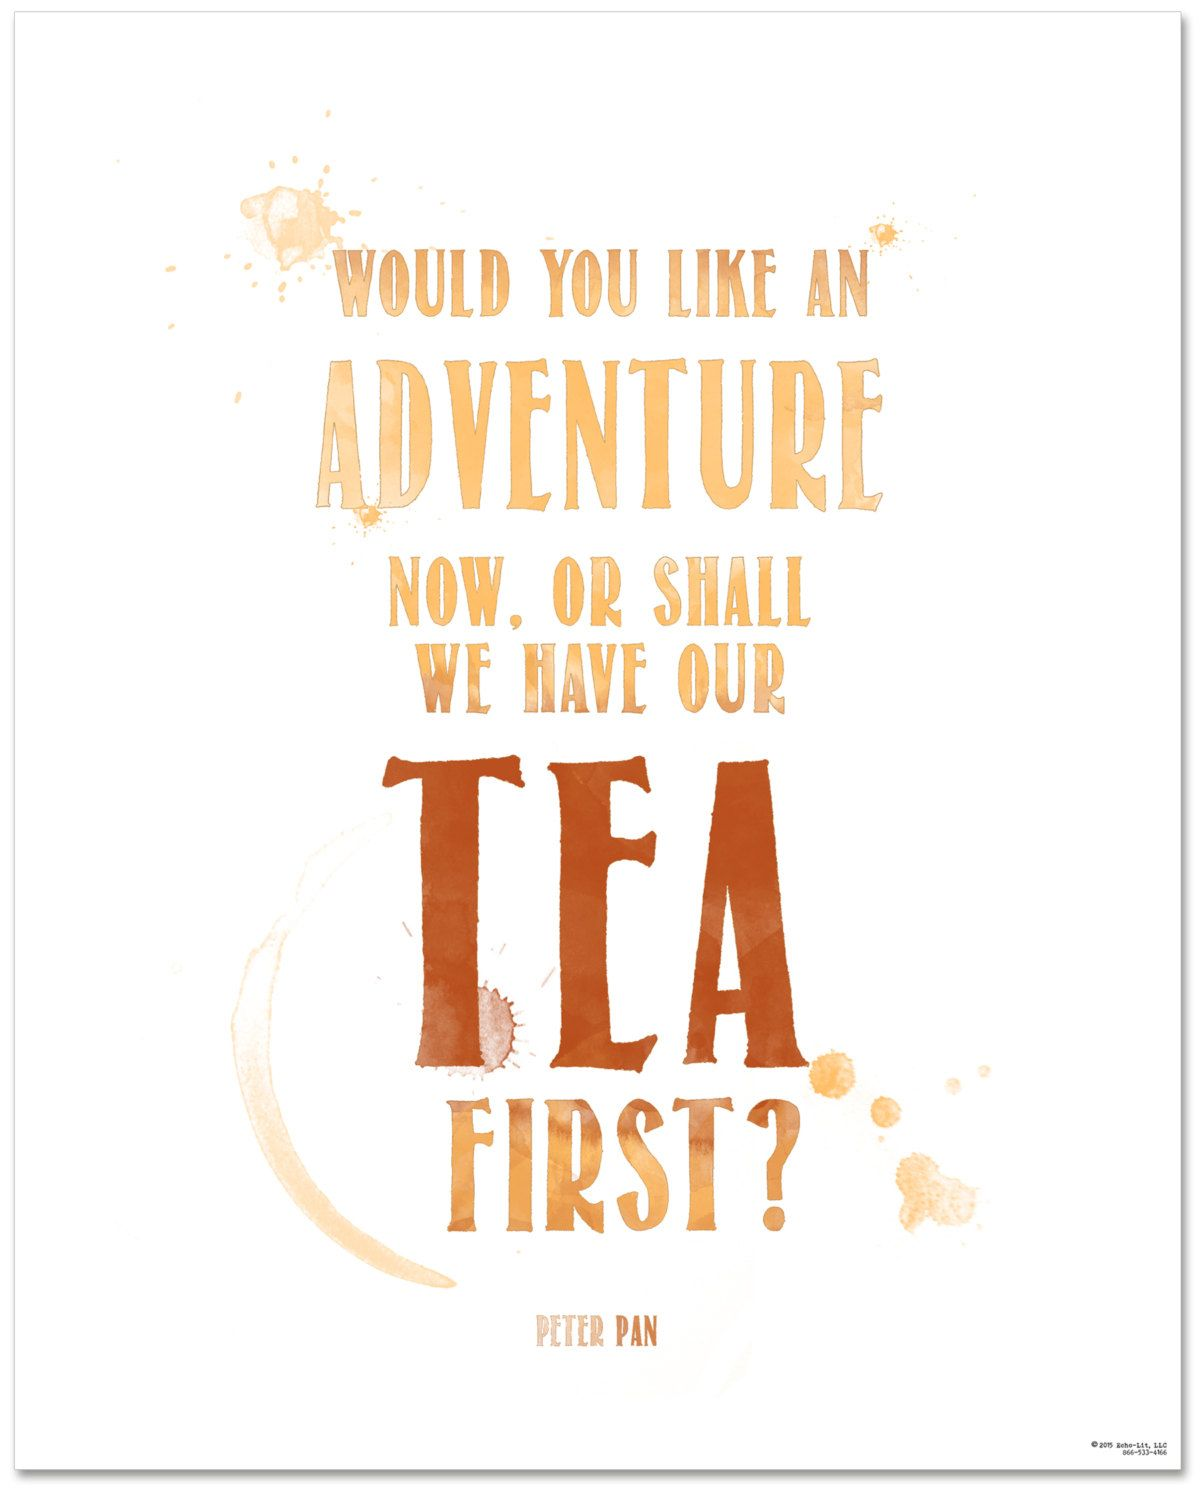 Kitchen Tea Quotes For Cards: Peter Pan Adventure Now Or Tea First